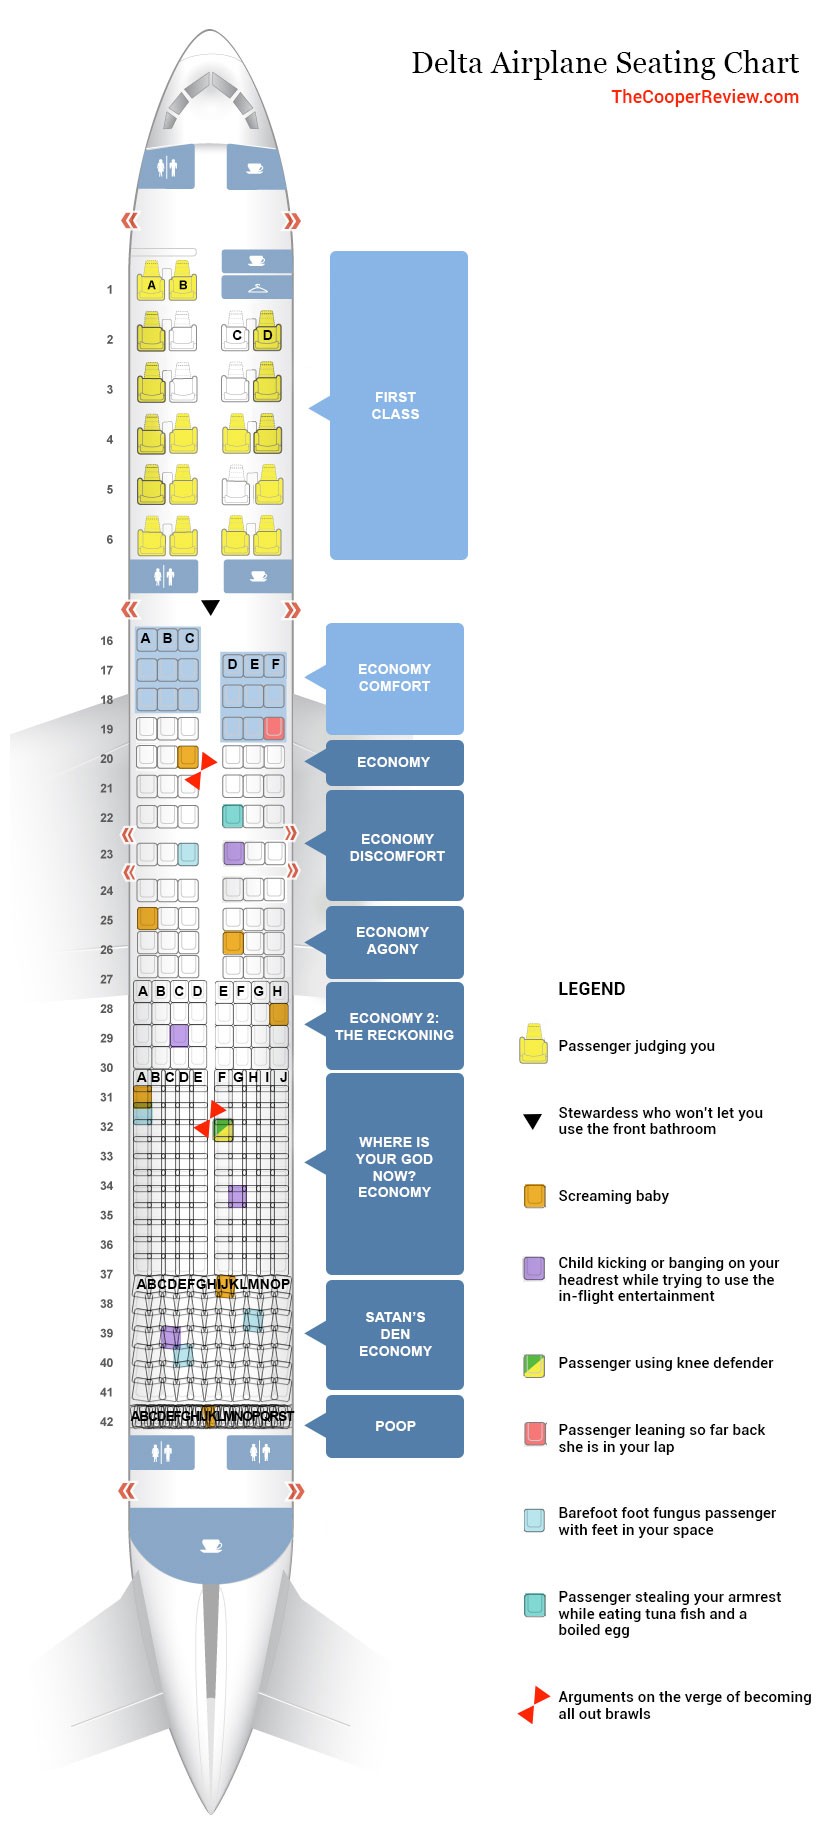 Delta unveils revolutionary new seating chart - Mile Writer